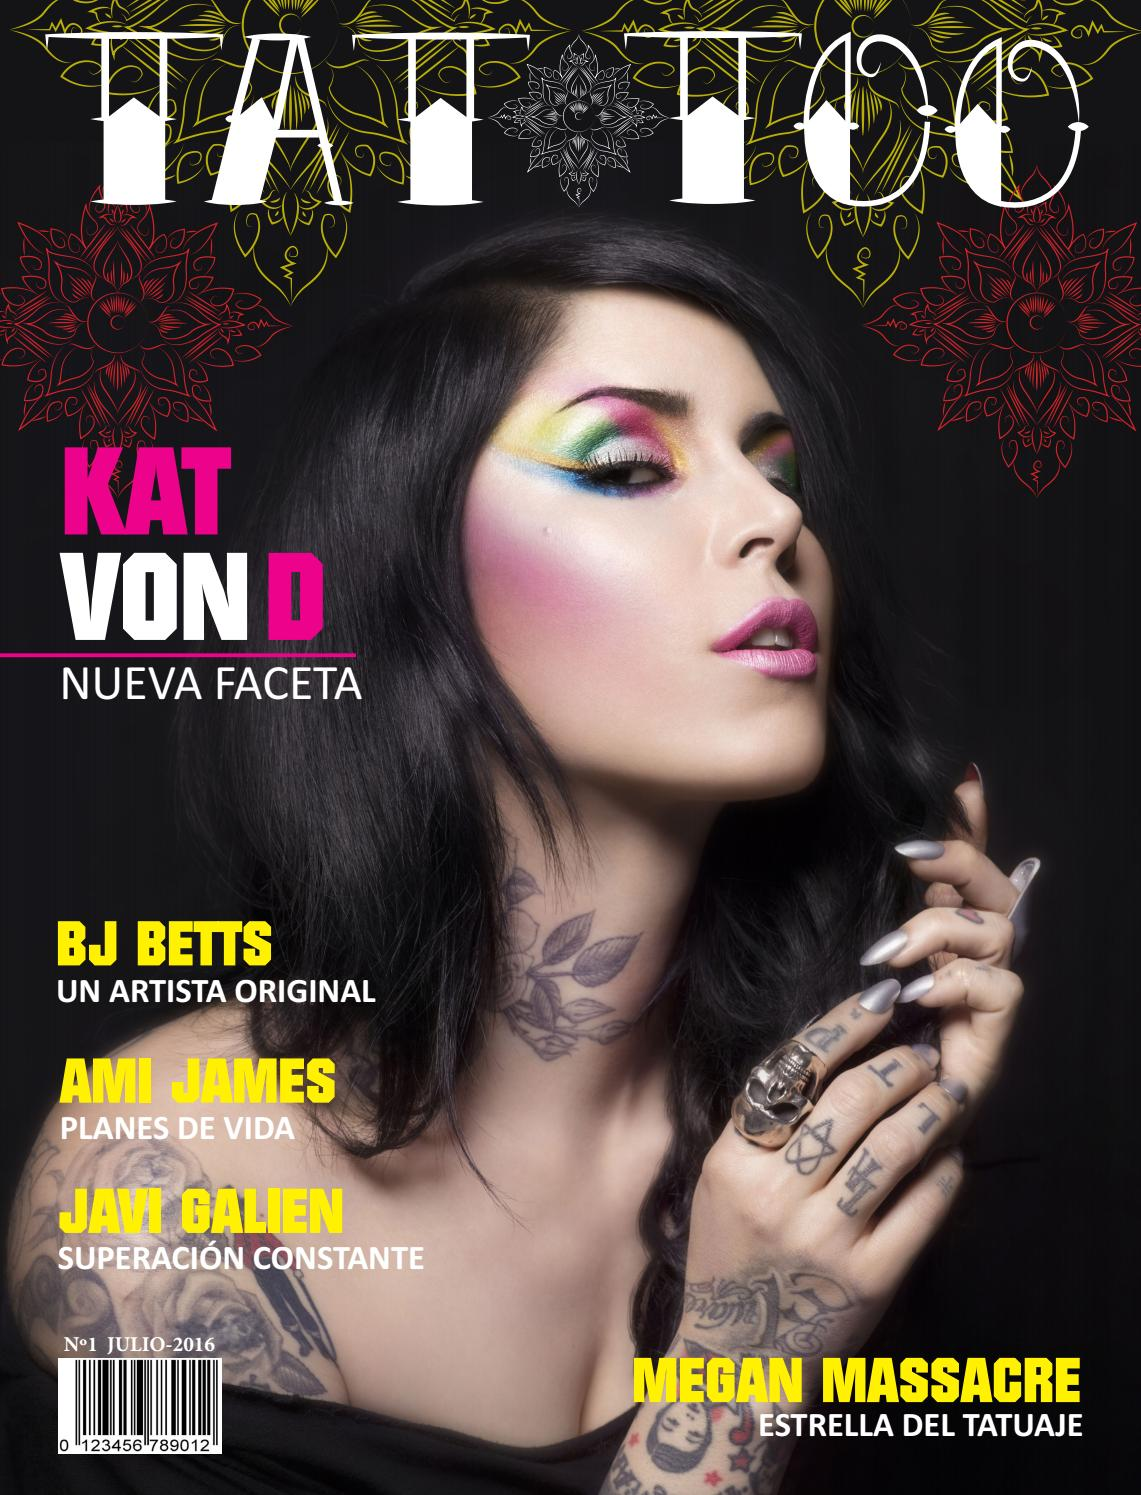 Tatau Tattoo Revista Tattoo By Camiacm - Issuu